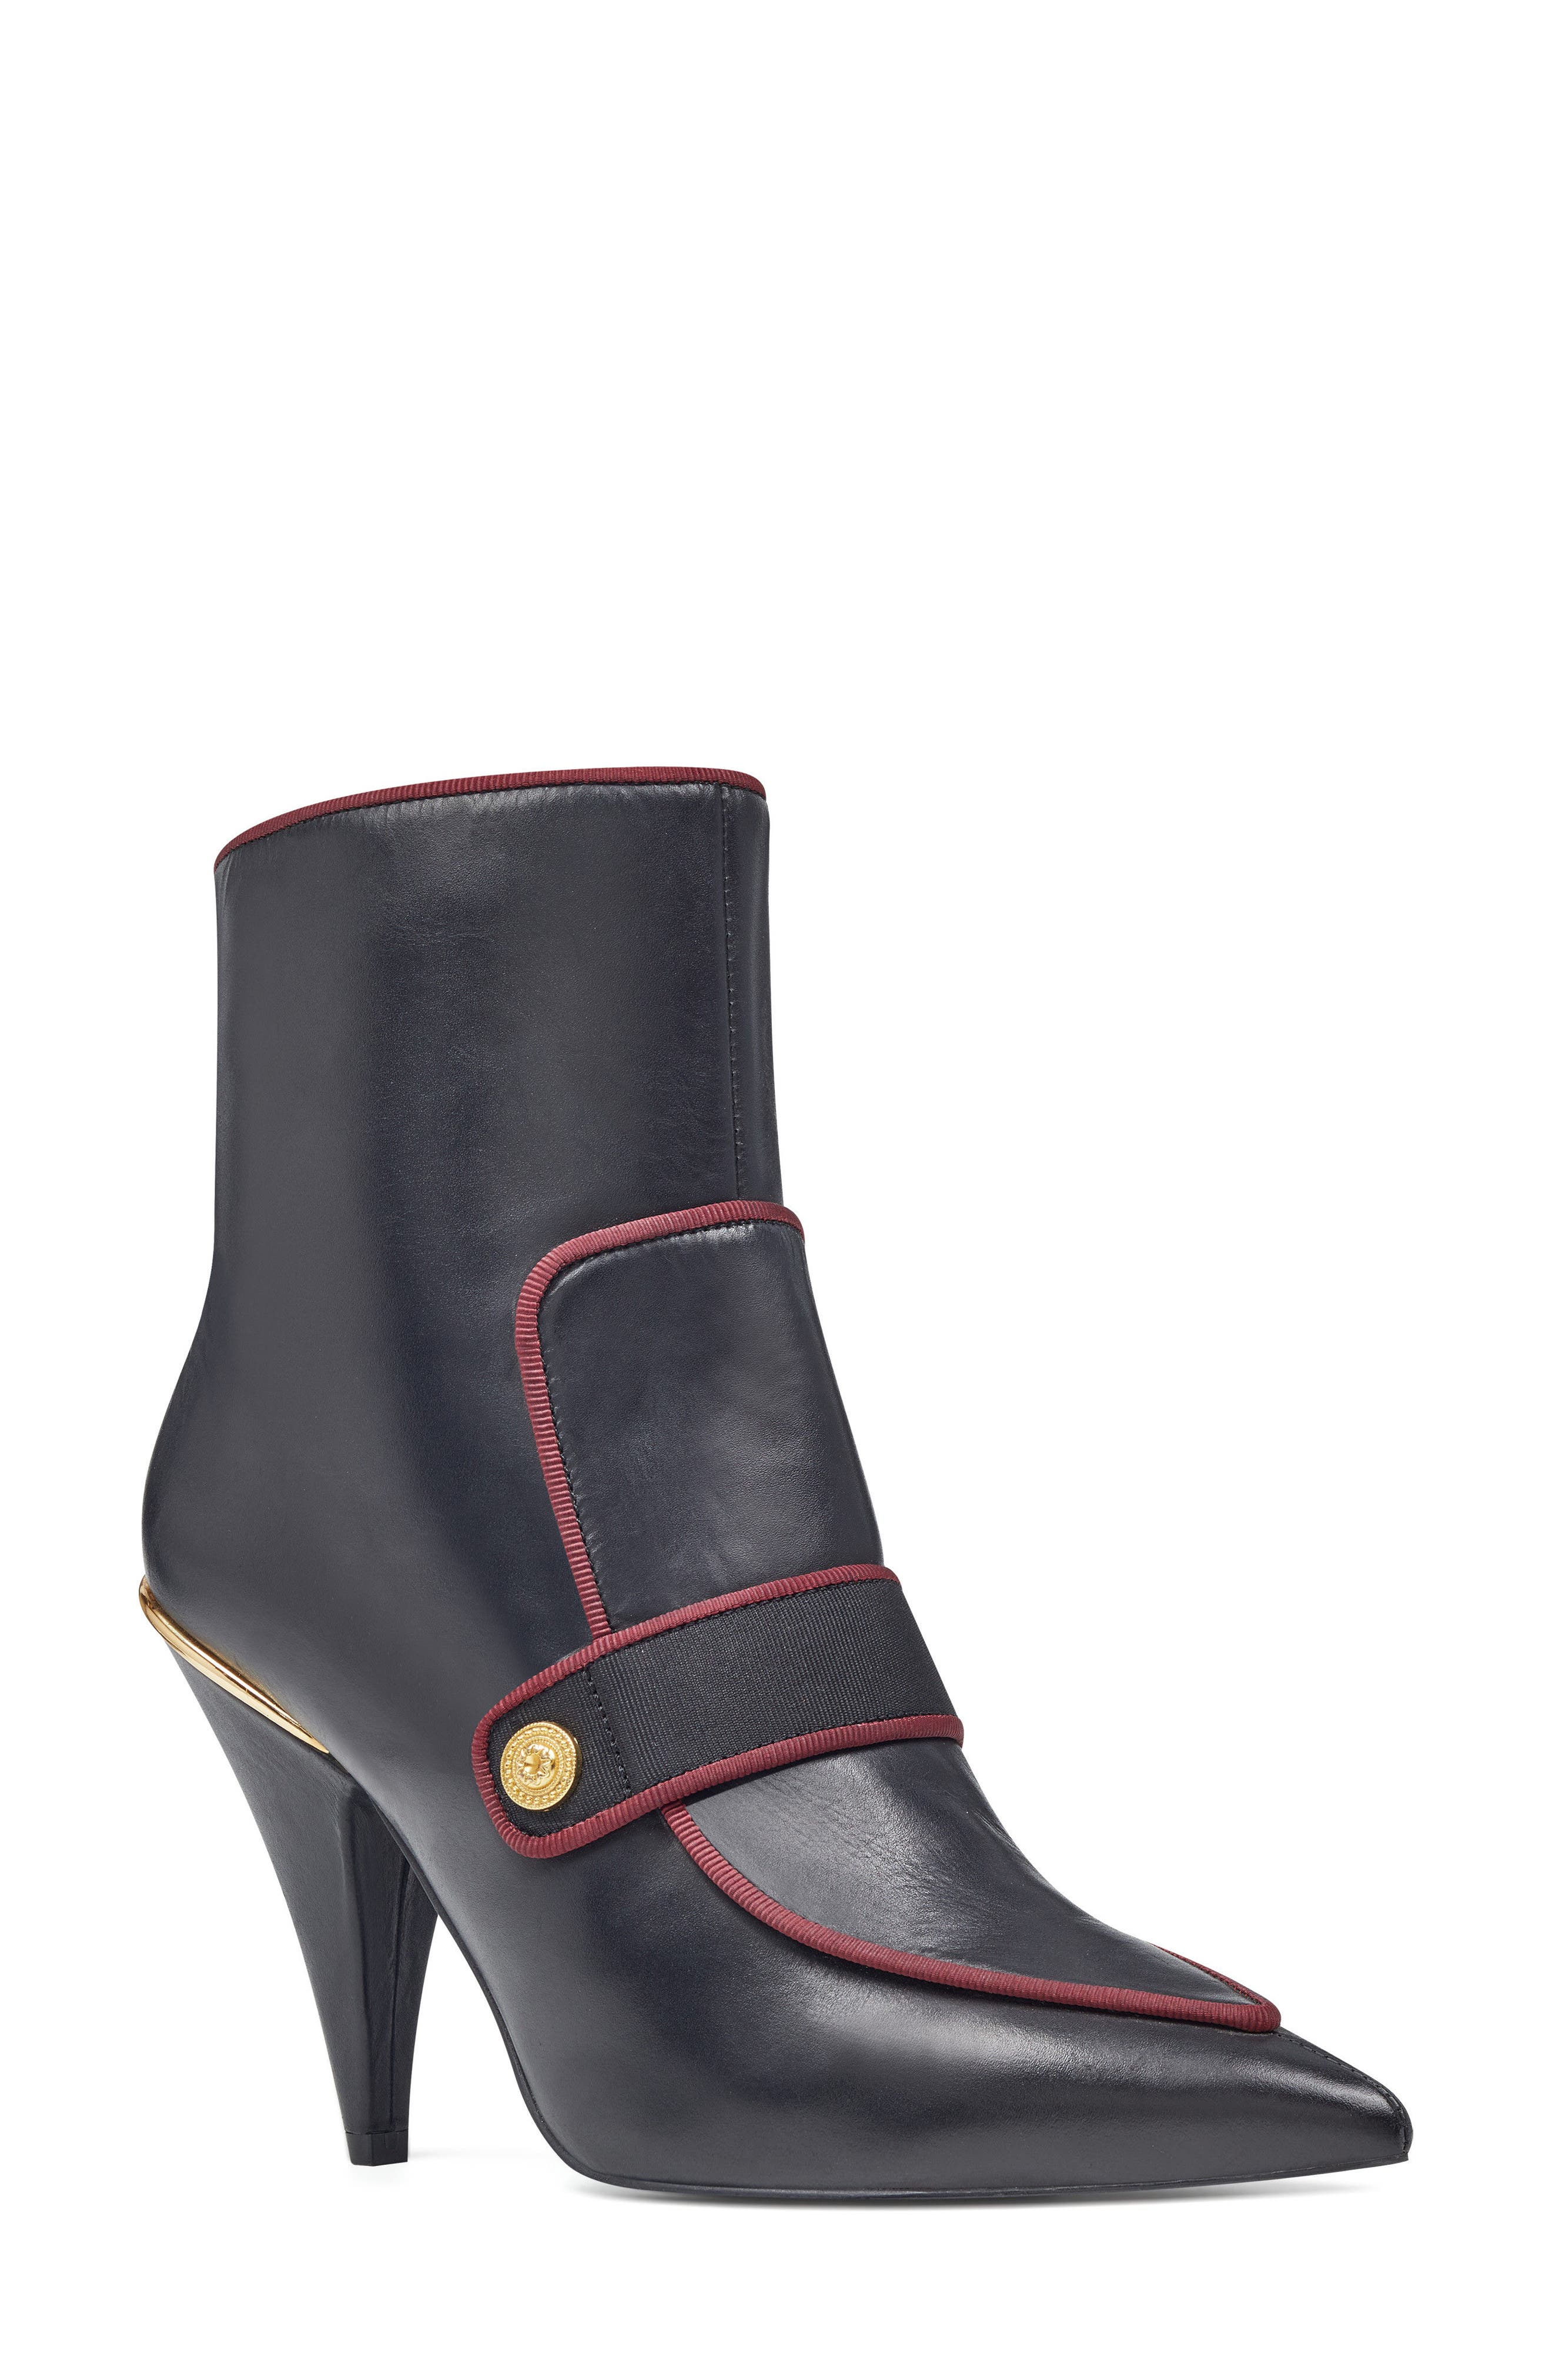 Westham Pointy Toe Bootie,                             Main thumbnail 1, color,                             001